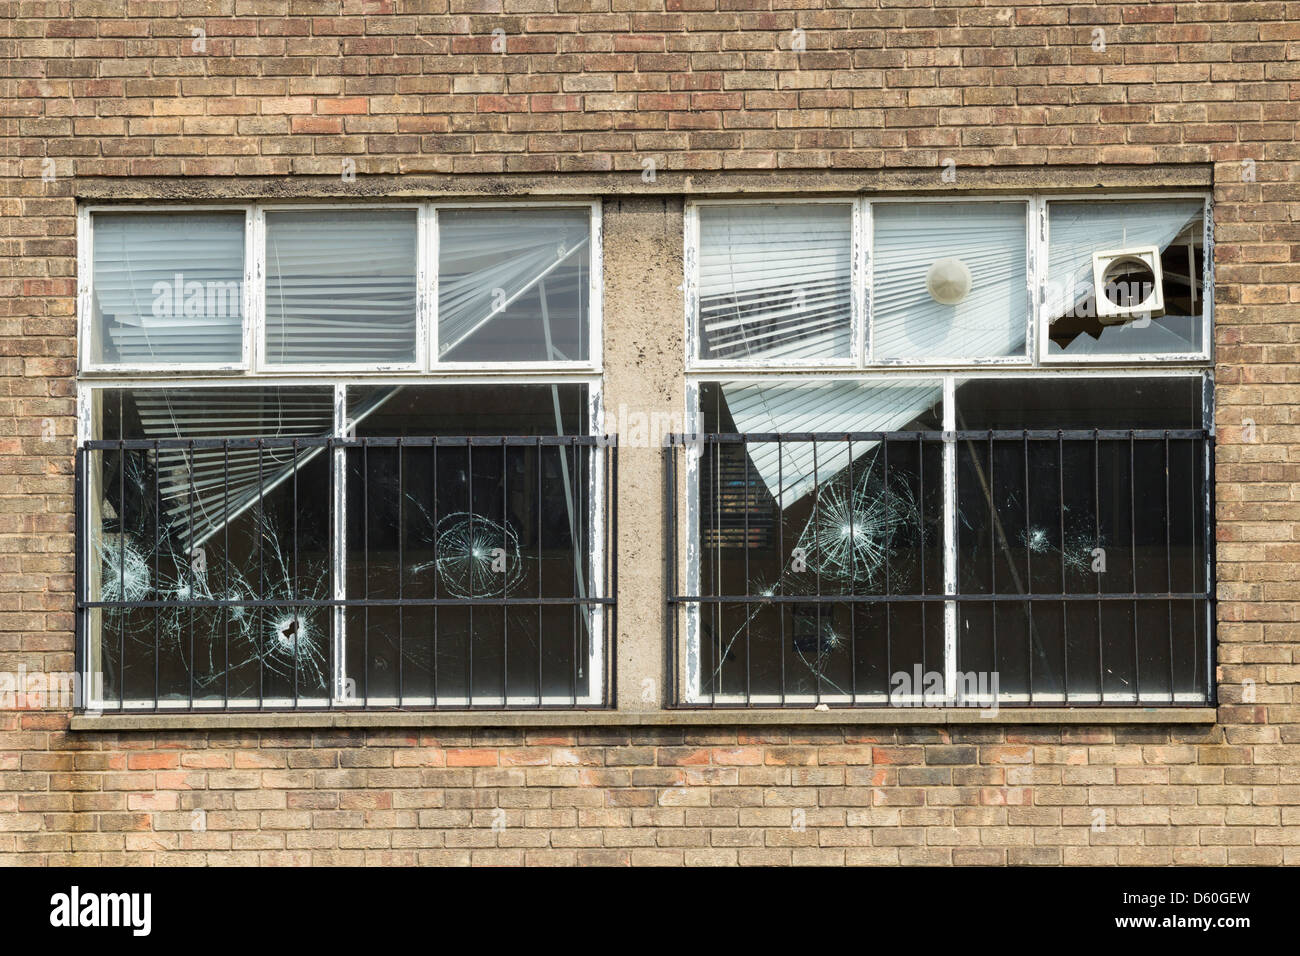 Broken window at derelict school. UK - Stock Image